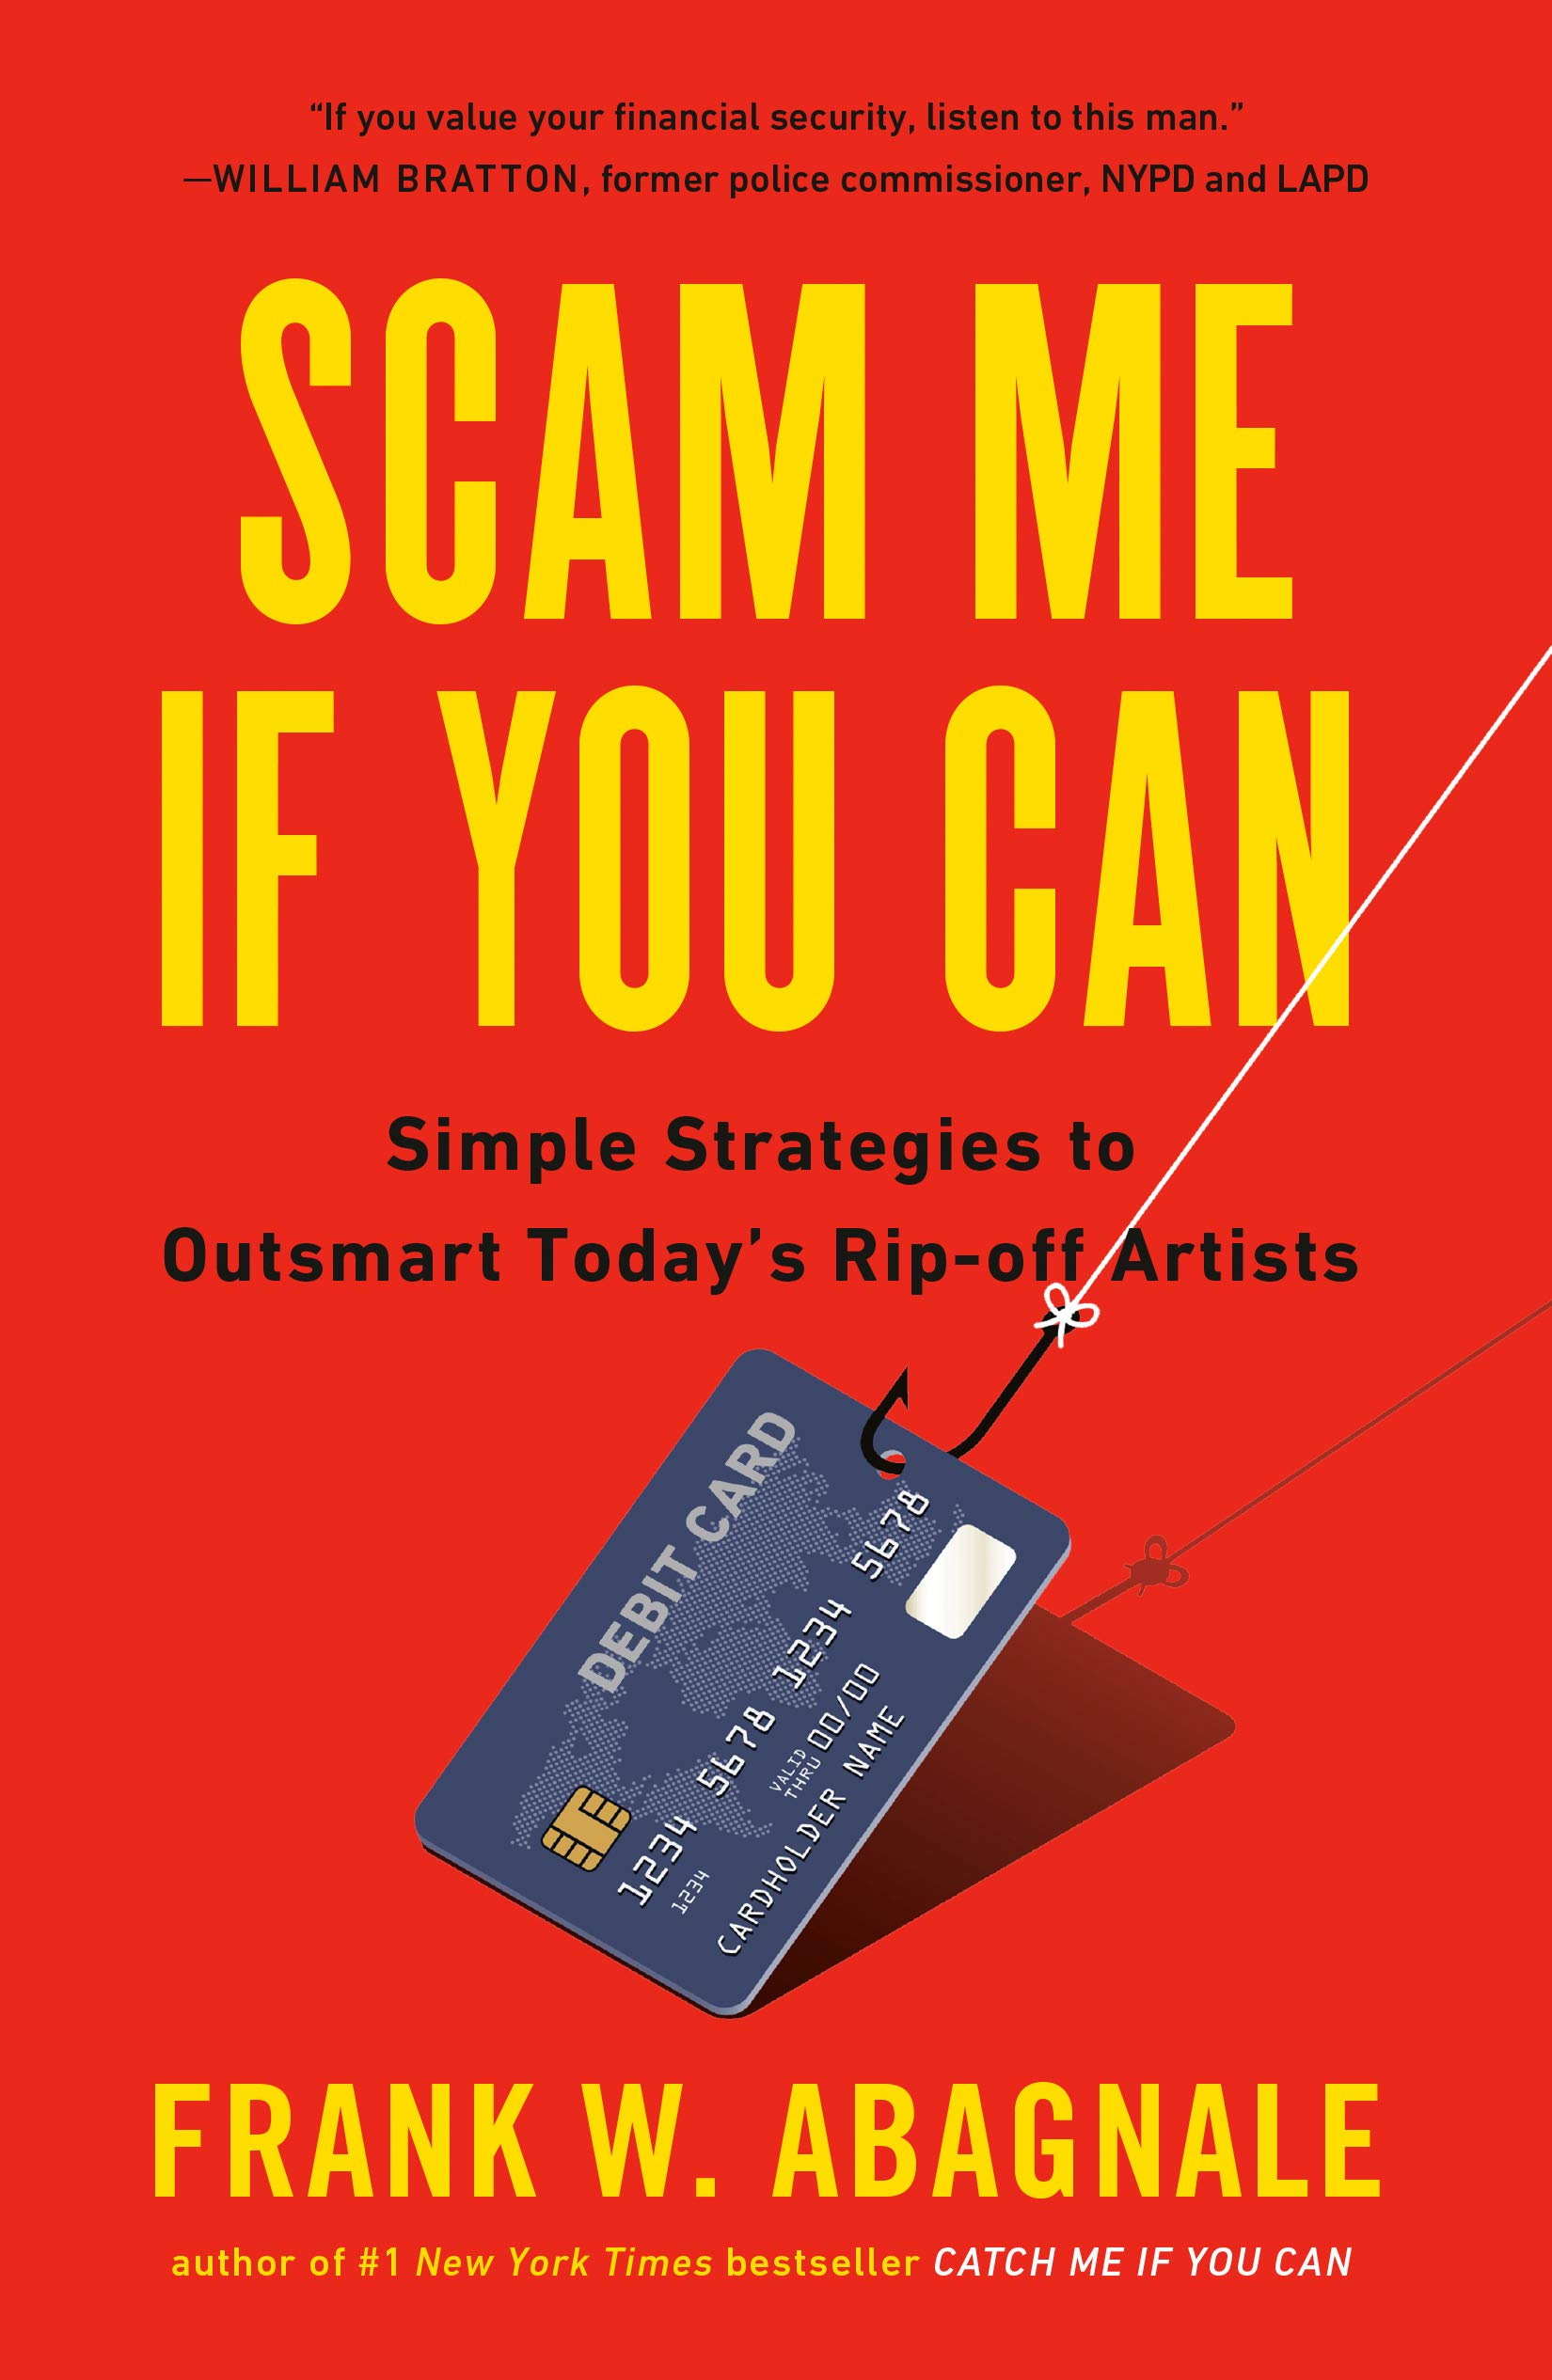 """Scam me if you can"" by Frank Abagnale book cover."